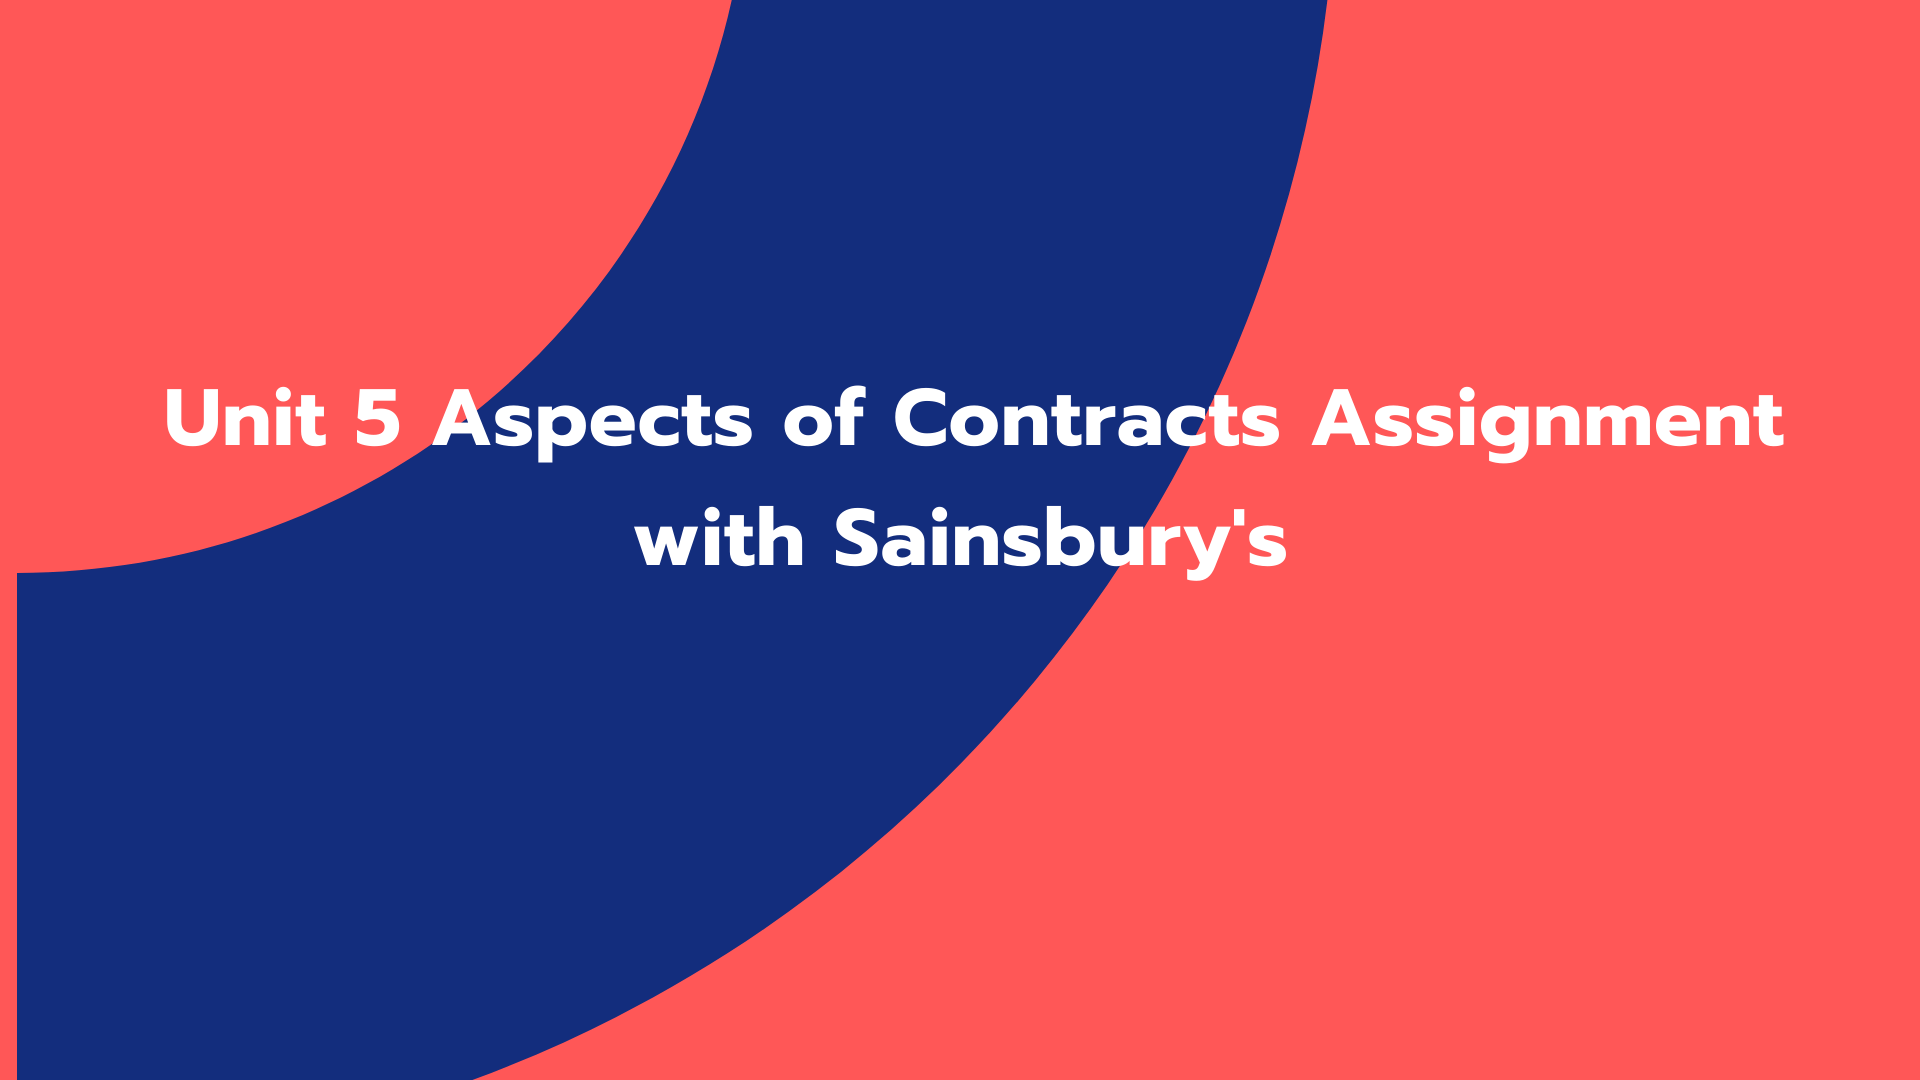 Unit 5 Aspects of Contracts Assignment with Sainsbury's